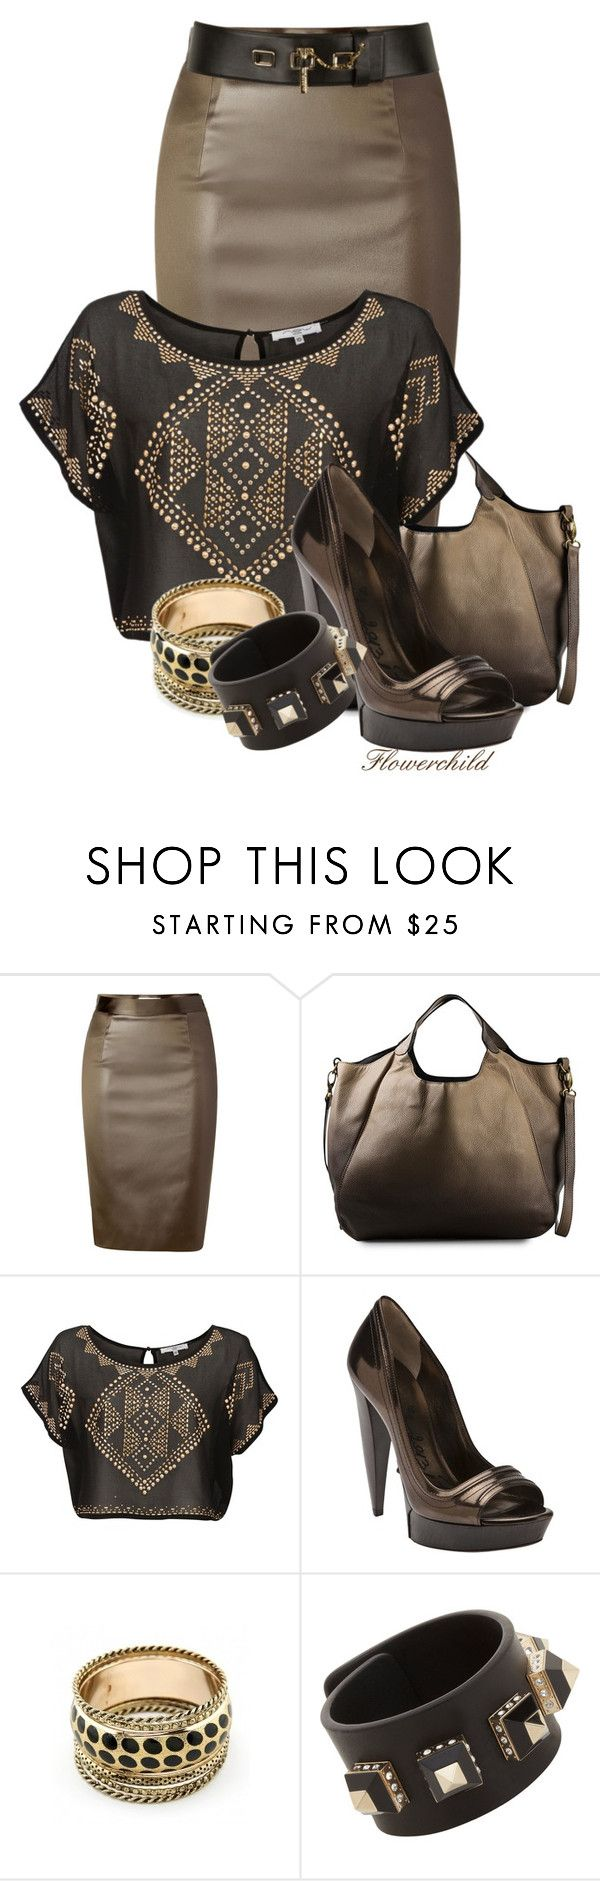 """Mocha"" by flowerchild805 ❤ liked on Polyvore featuring Moschino Cheap & Chic, Pieces, Lanvin, Retrò, Givenchy and Carven"